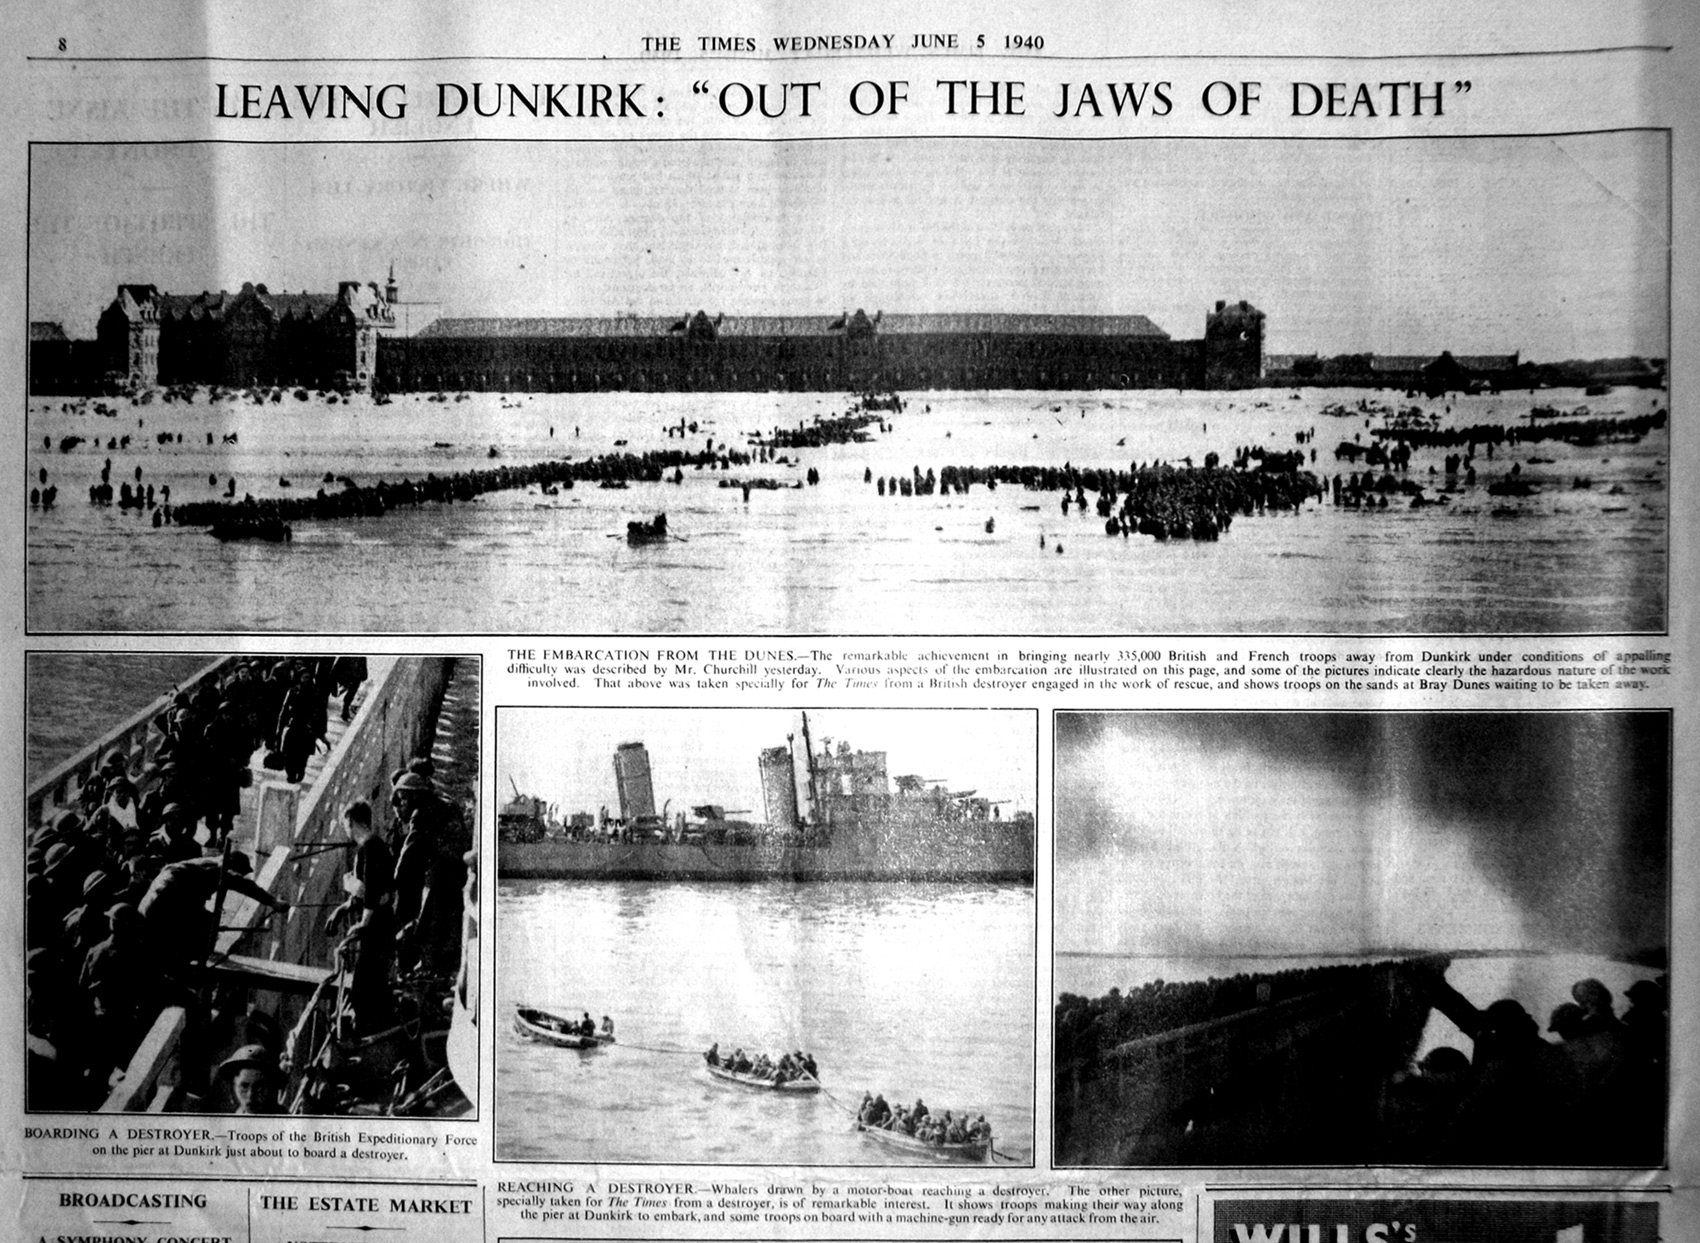 Dunkirk in the TIMES on 5 June 1940